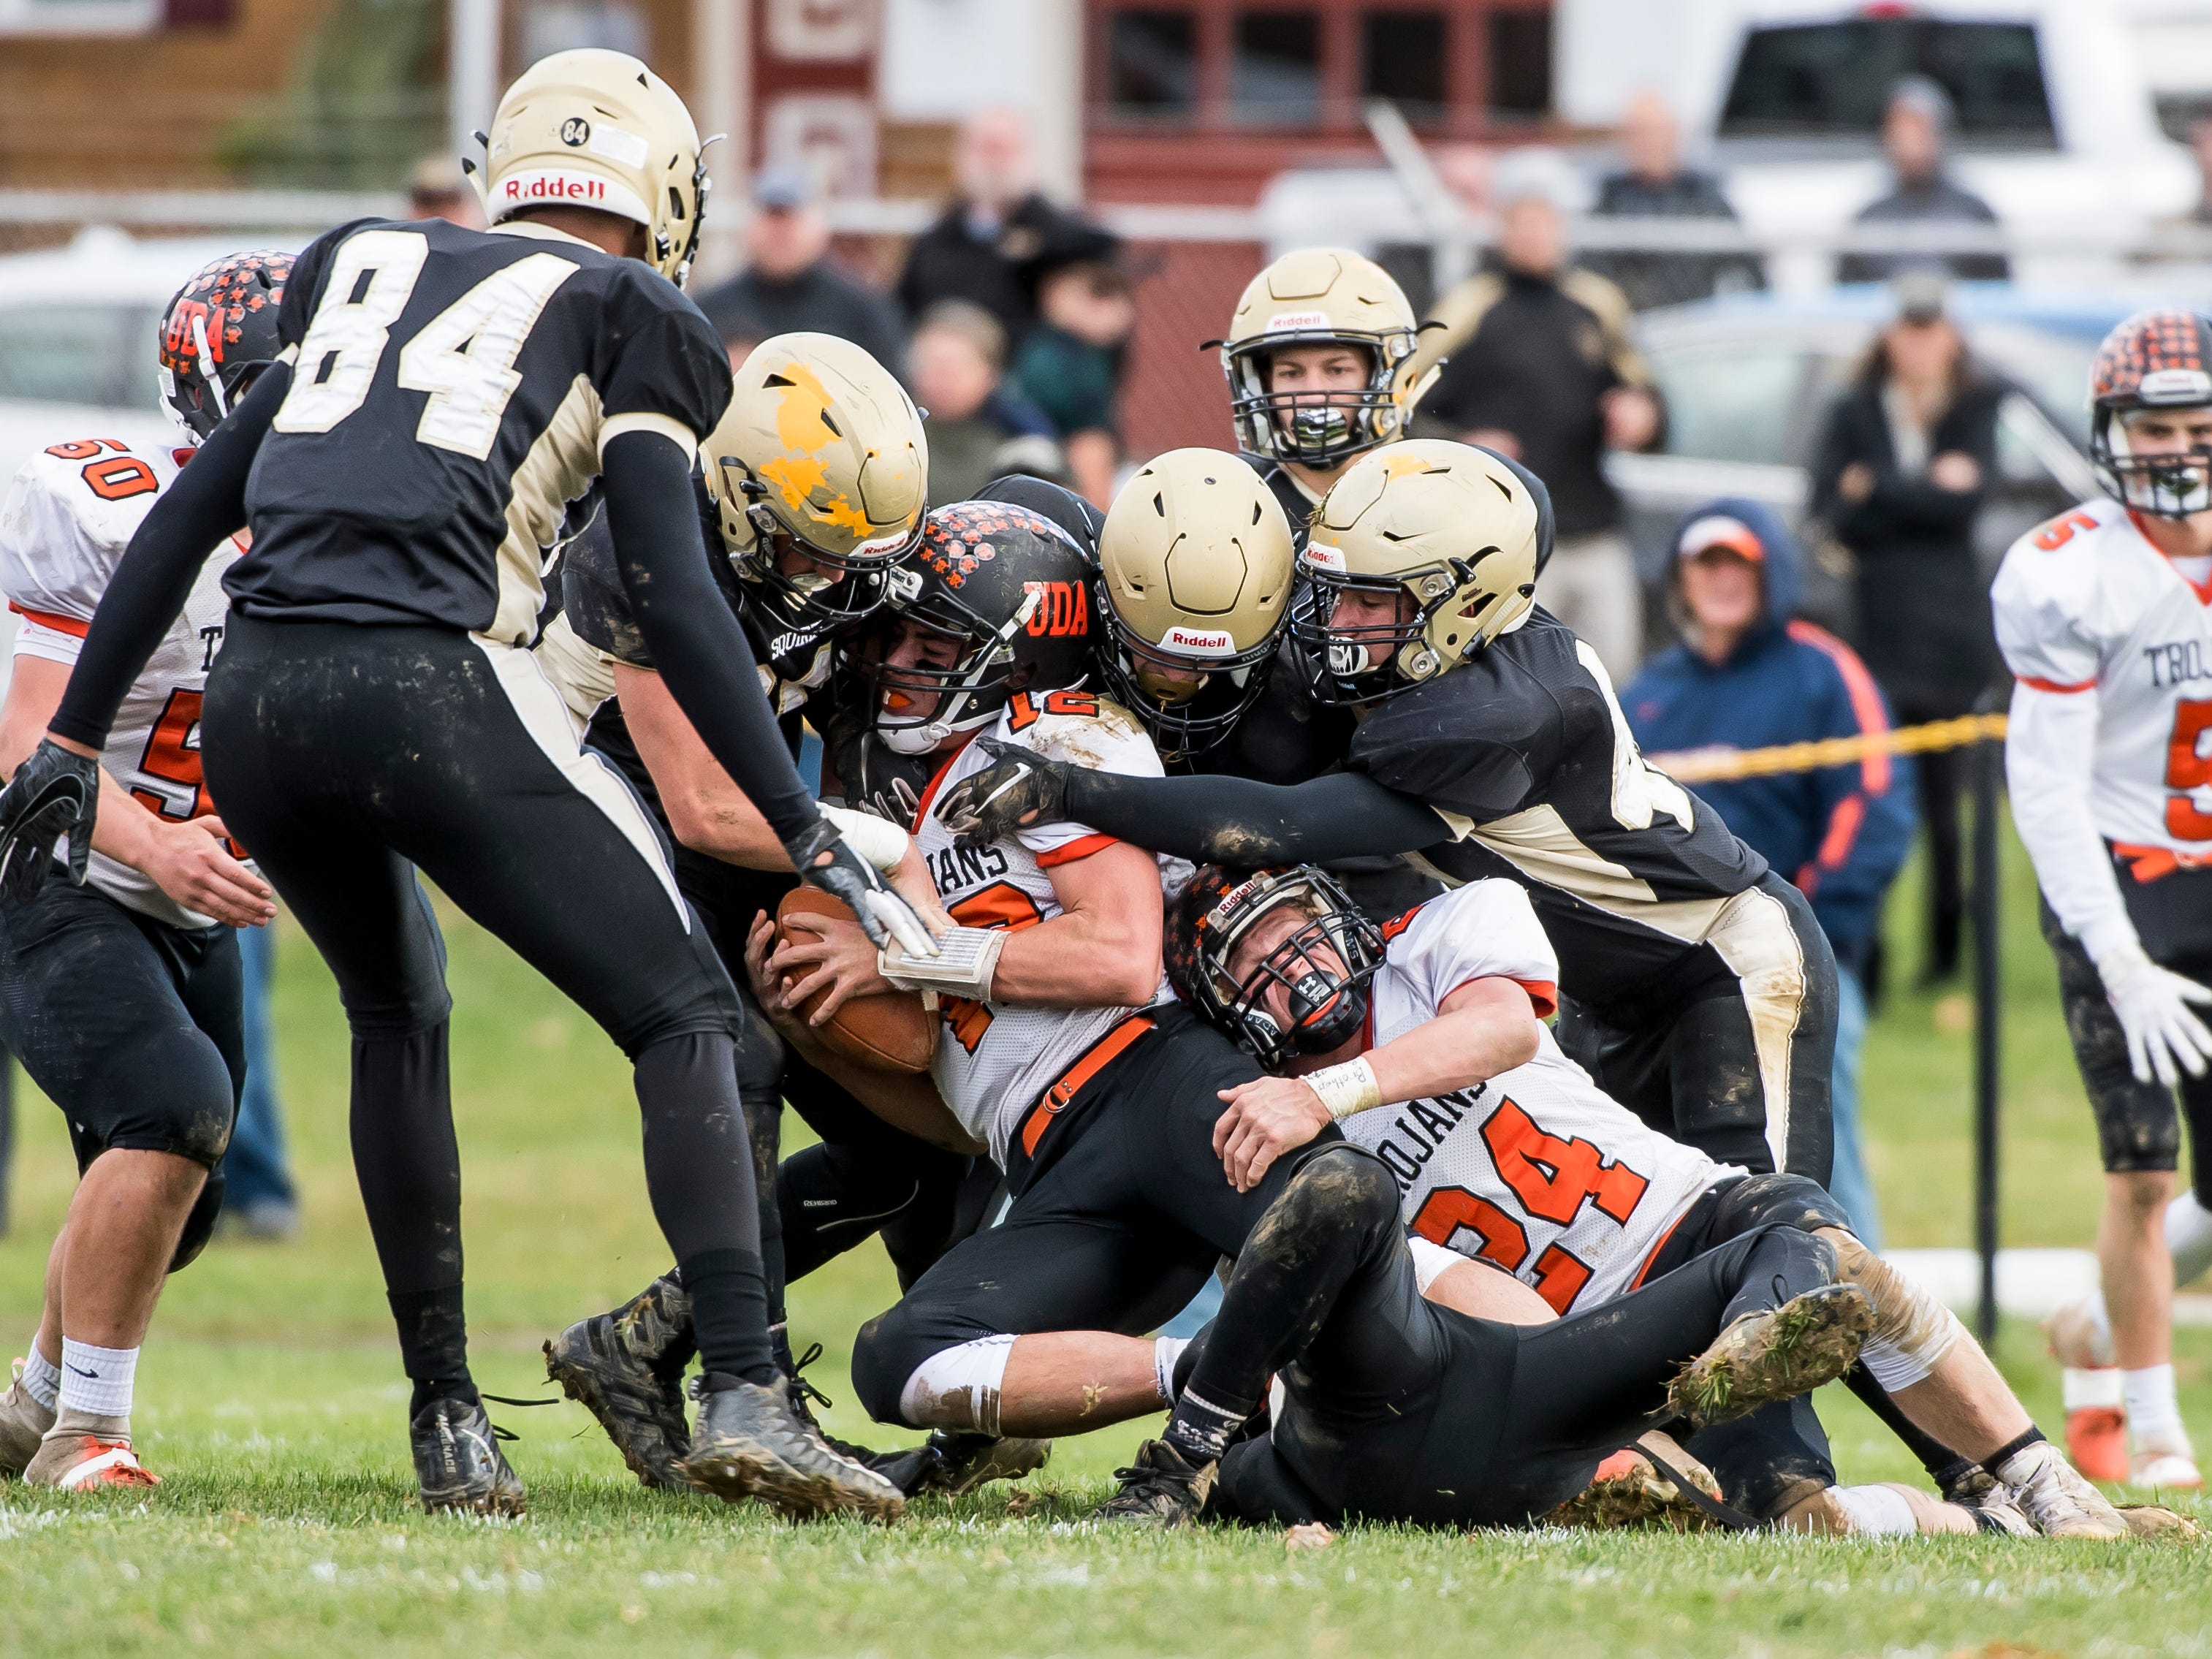 A host of Delone Catholic players put the hit on Upper Dauphin's Macklin Ayers during a District III Class 2A semifinal game on Saturday, November 3, 2018. The Squires won 48-23.